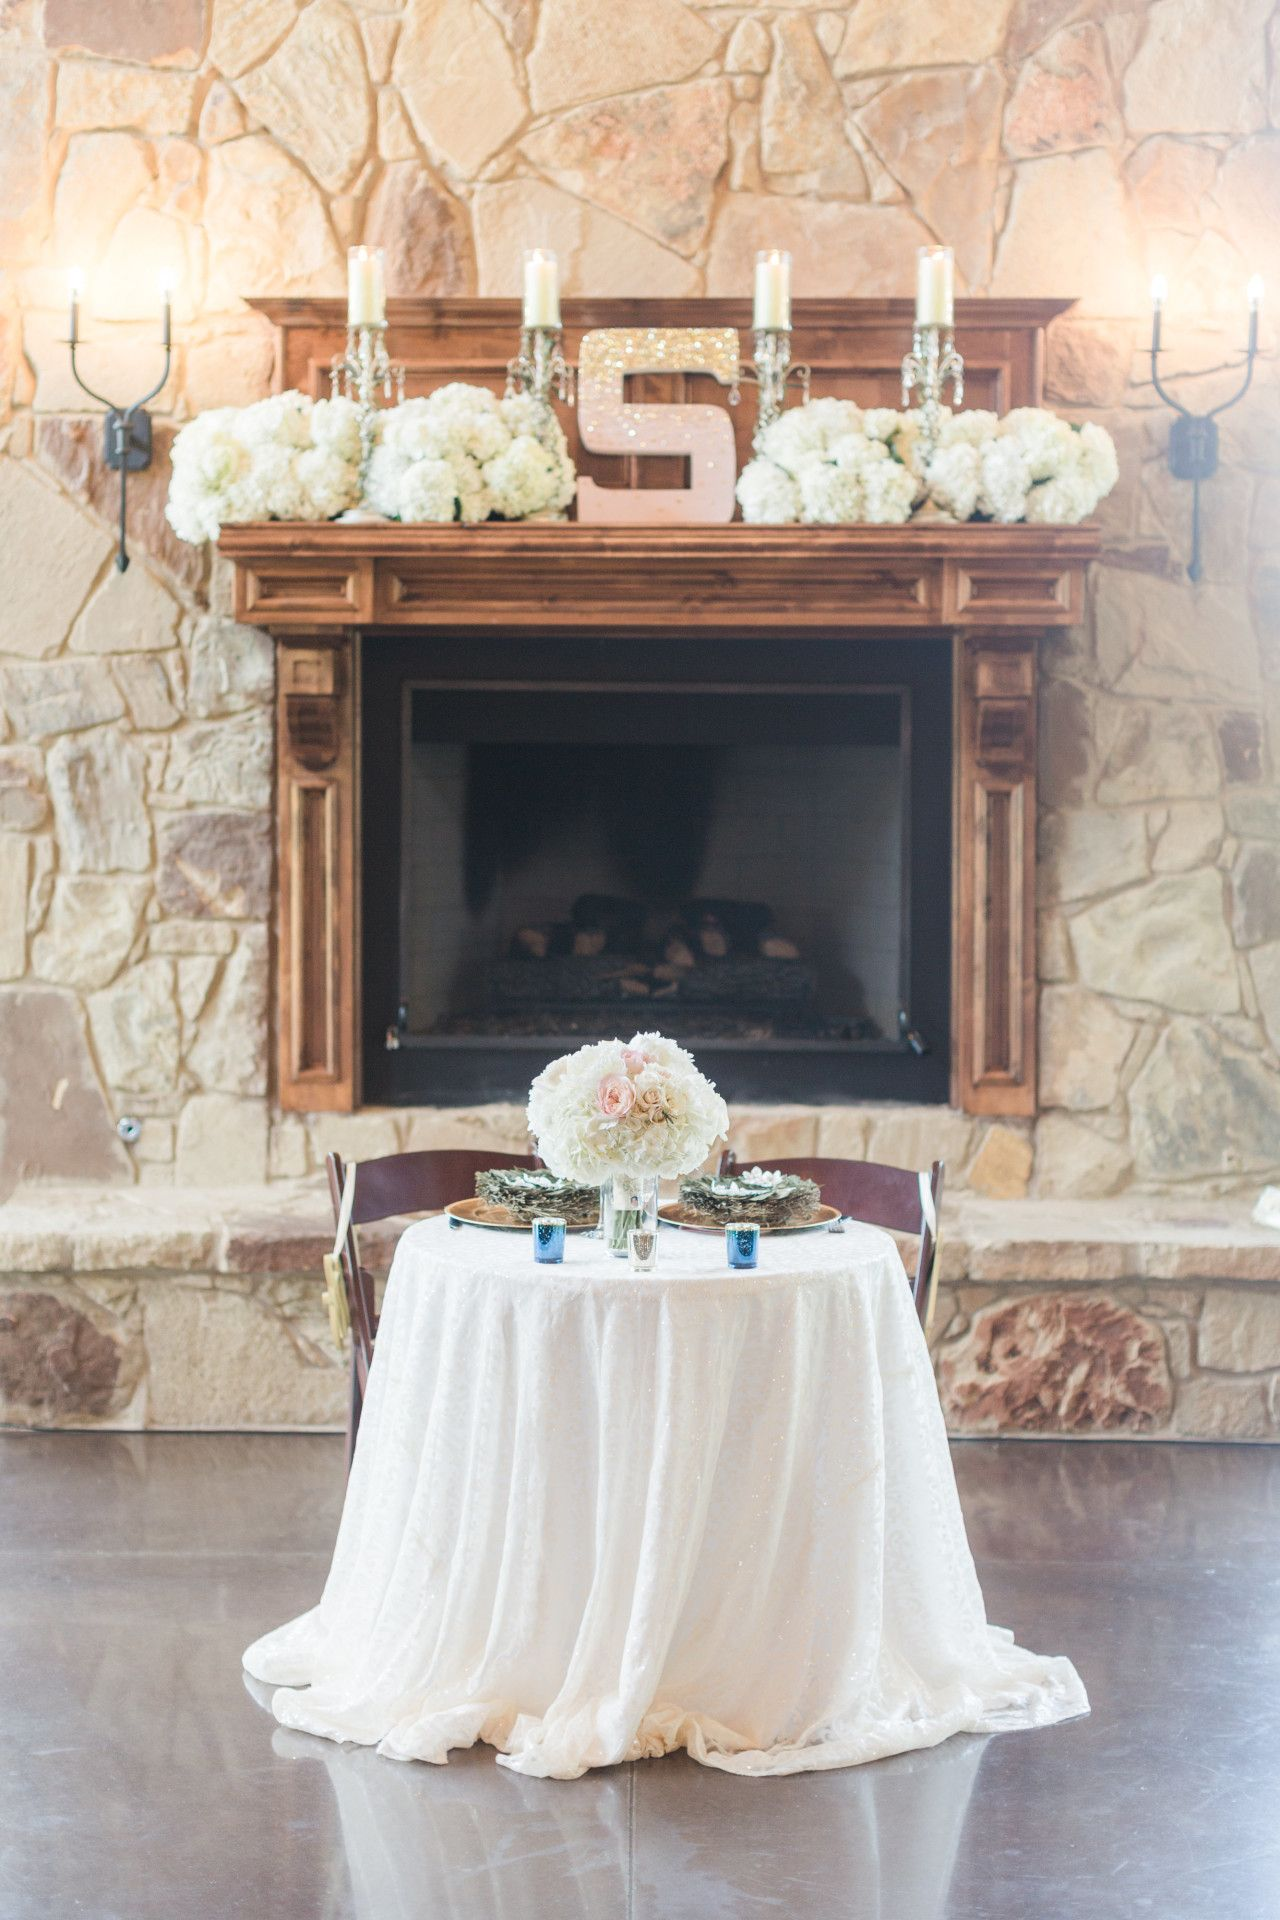 Wedding decorations luxury  wedding venue fireplace decor ideas  fireplace mantle wedding decor